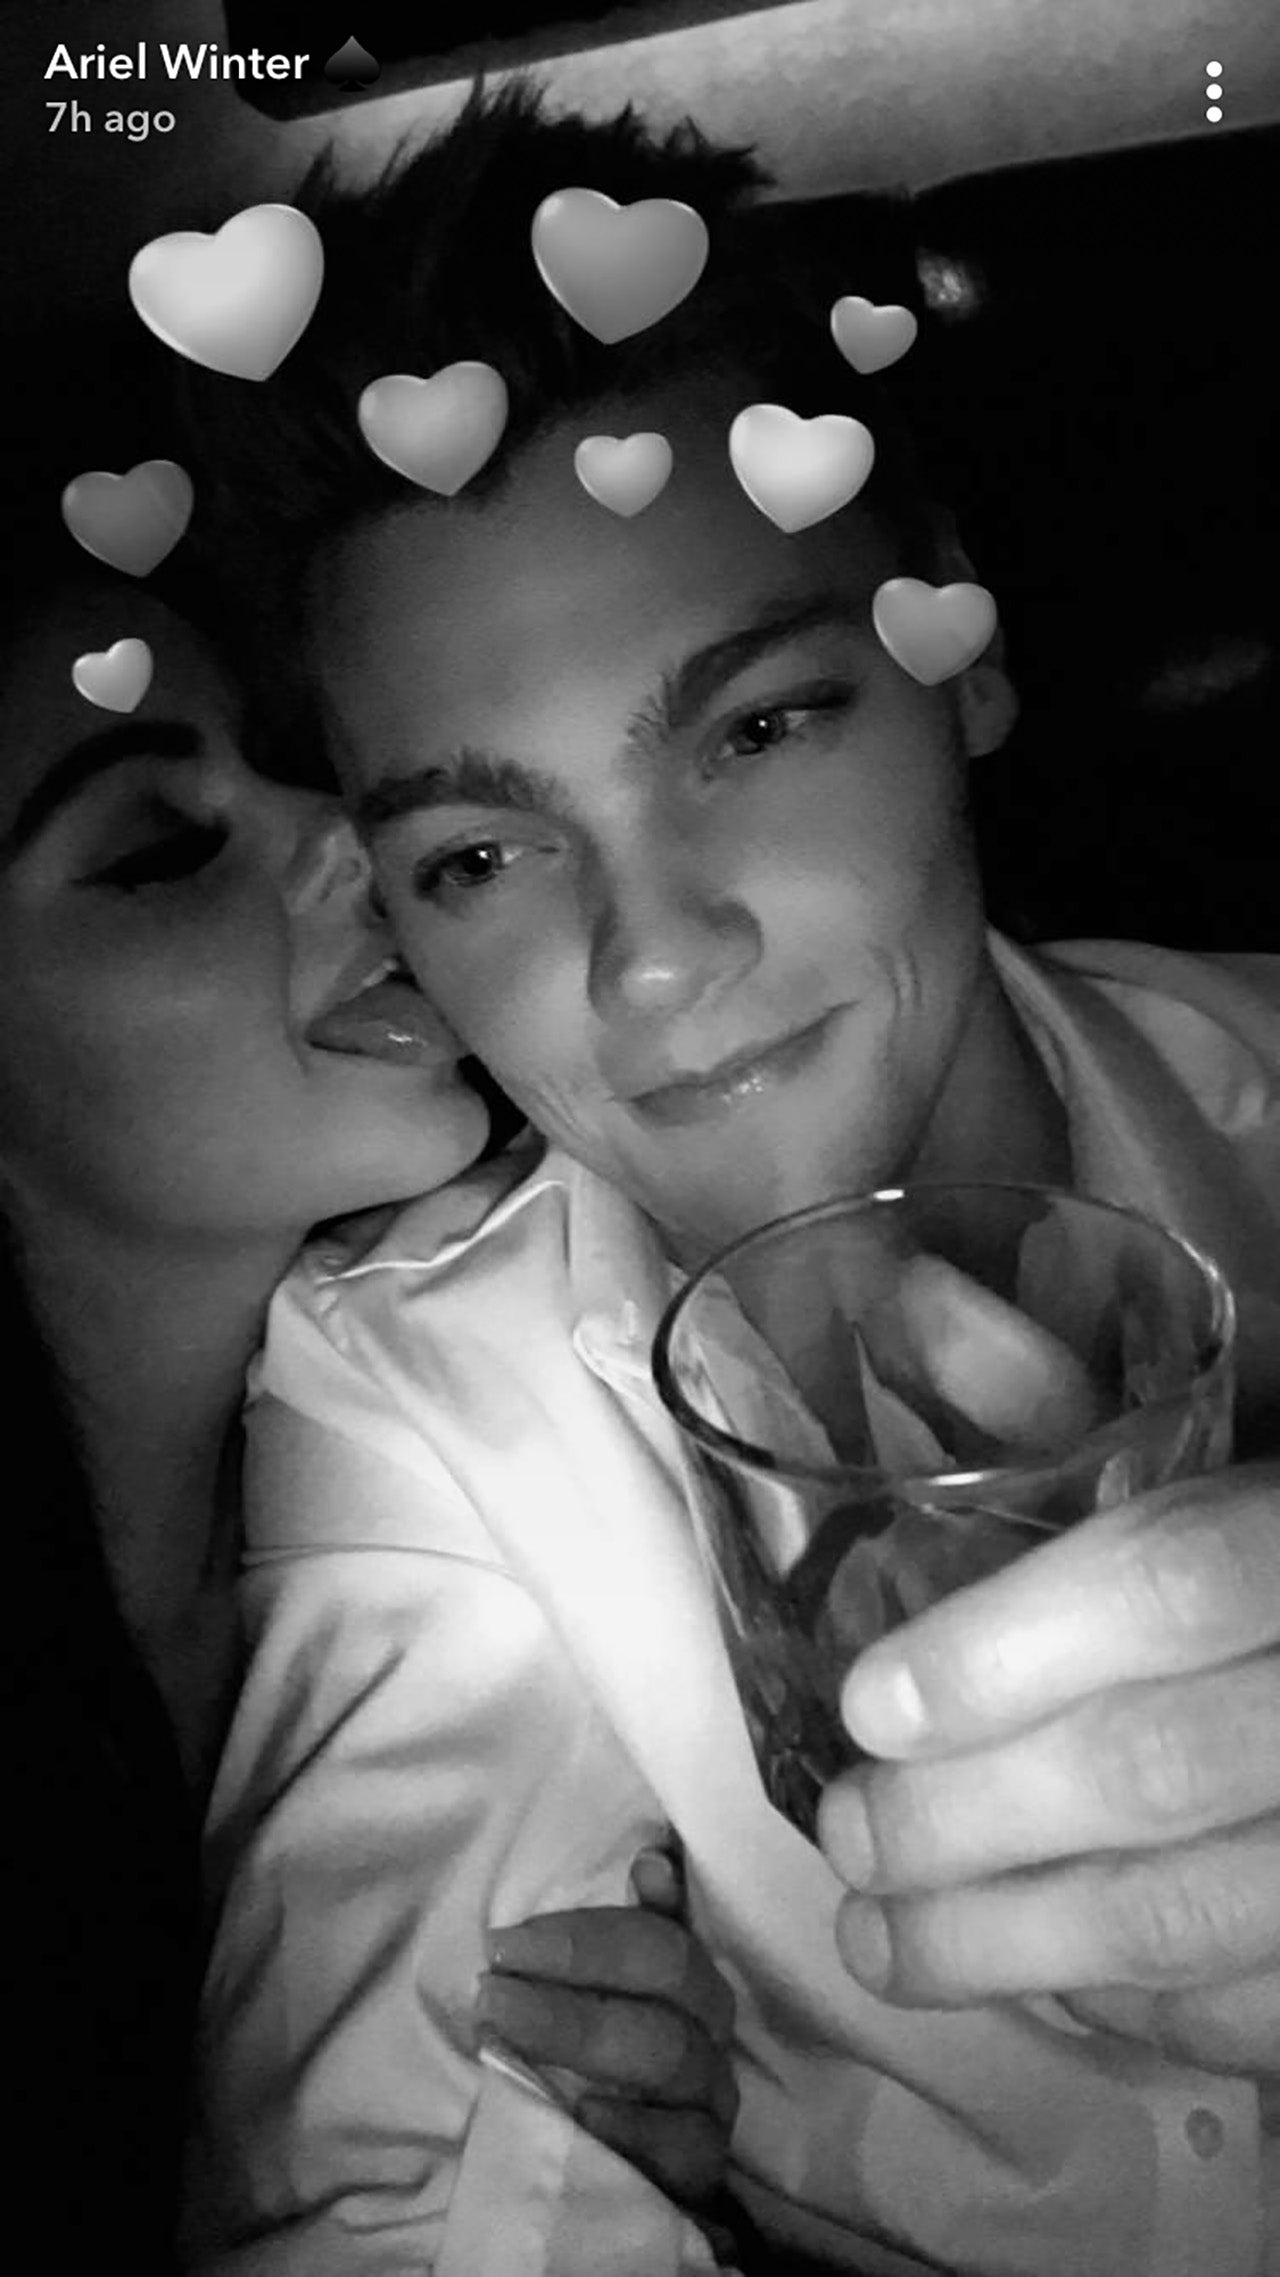 Ariel Winter and Levi Meaden PDA